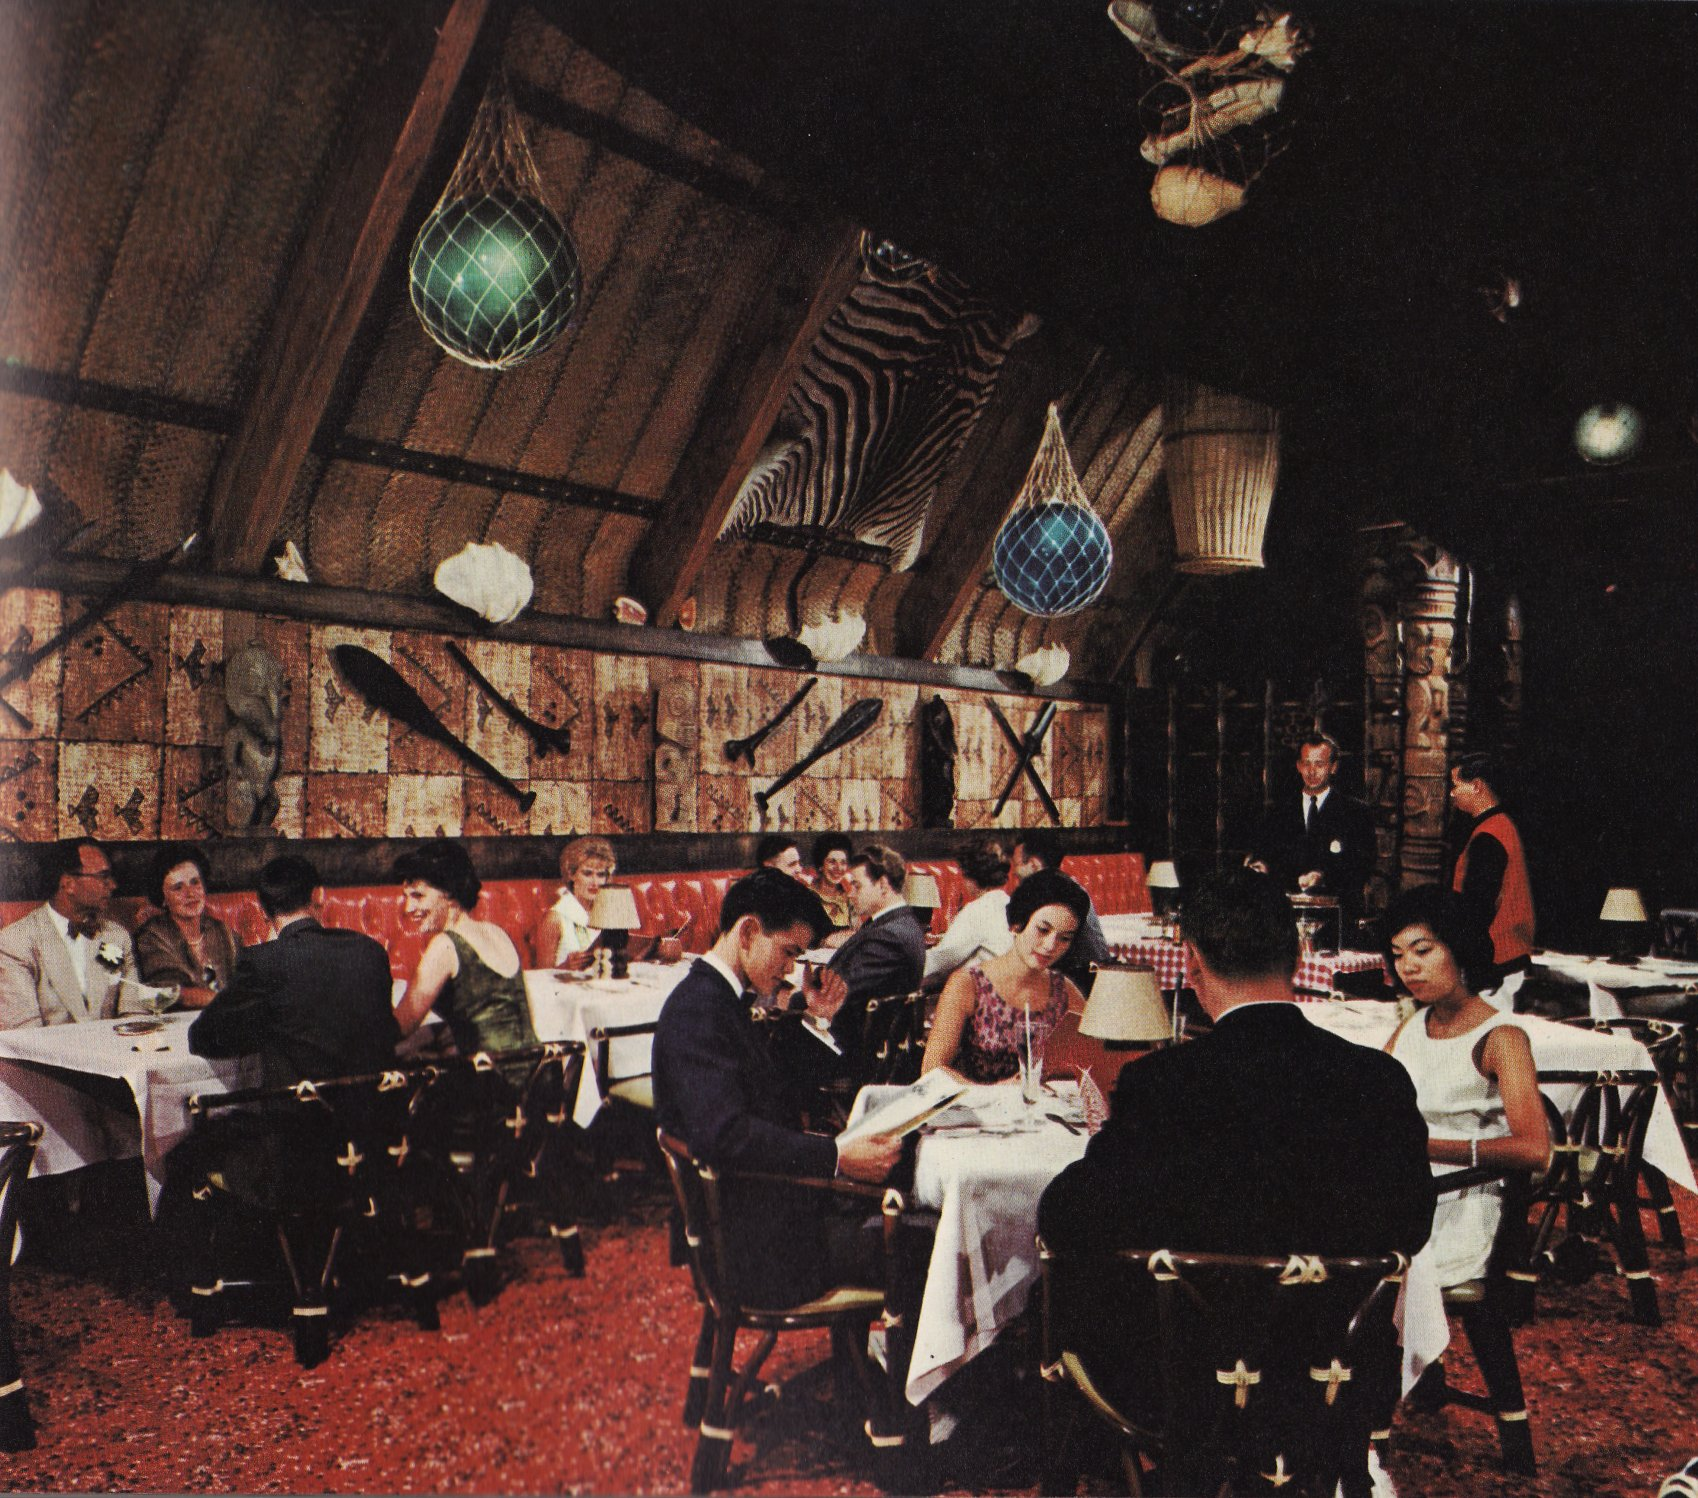 A photograph of the interior of a Trader Vic's restaurant, Vancouver (1961)